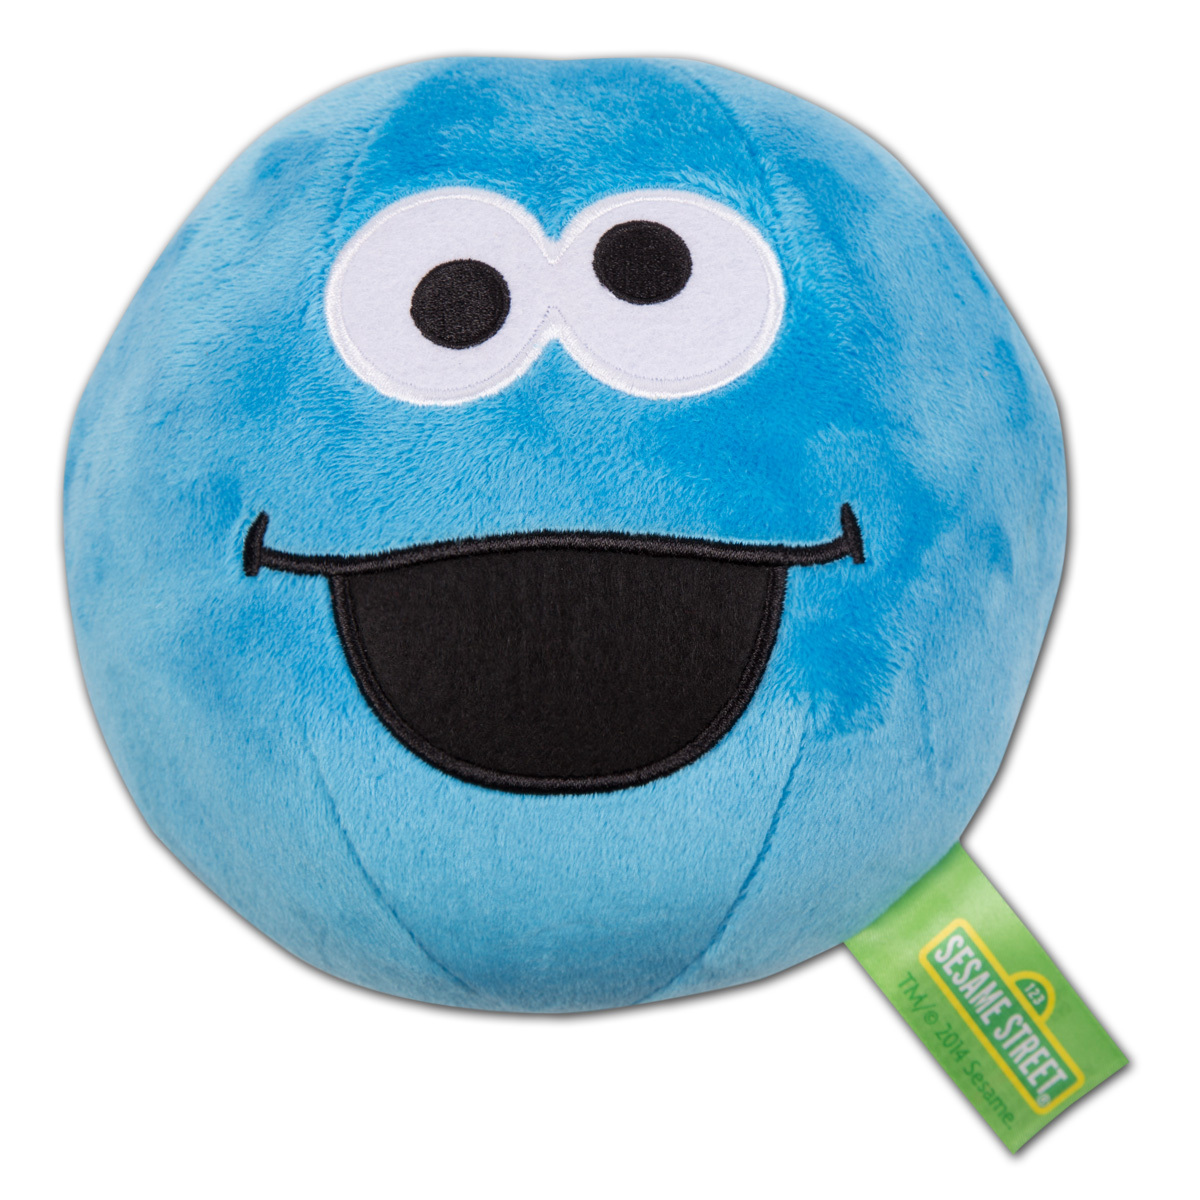 Cookie Monster Chime Ball